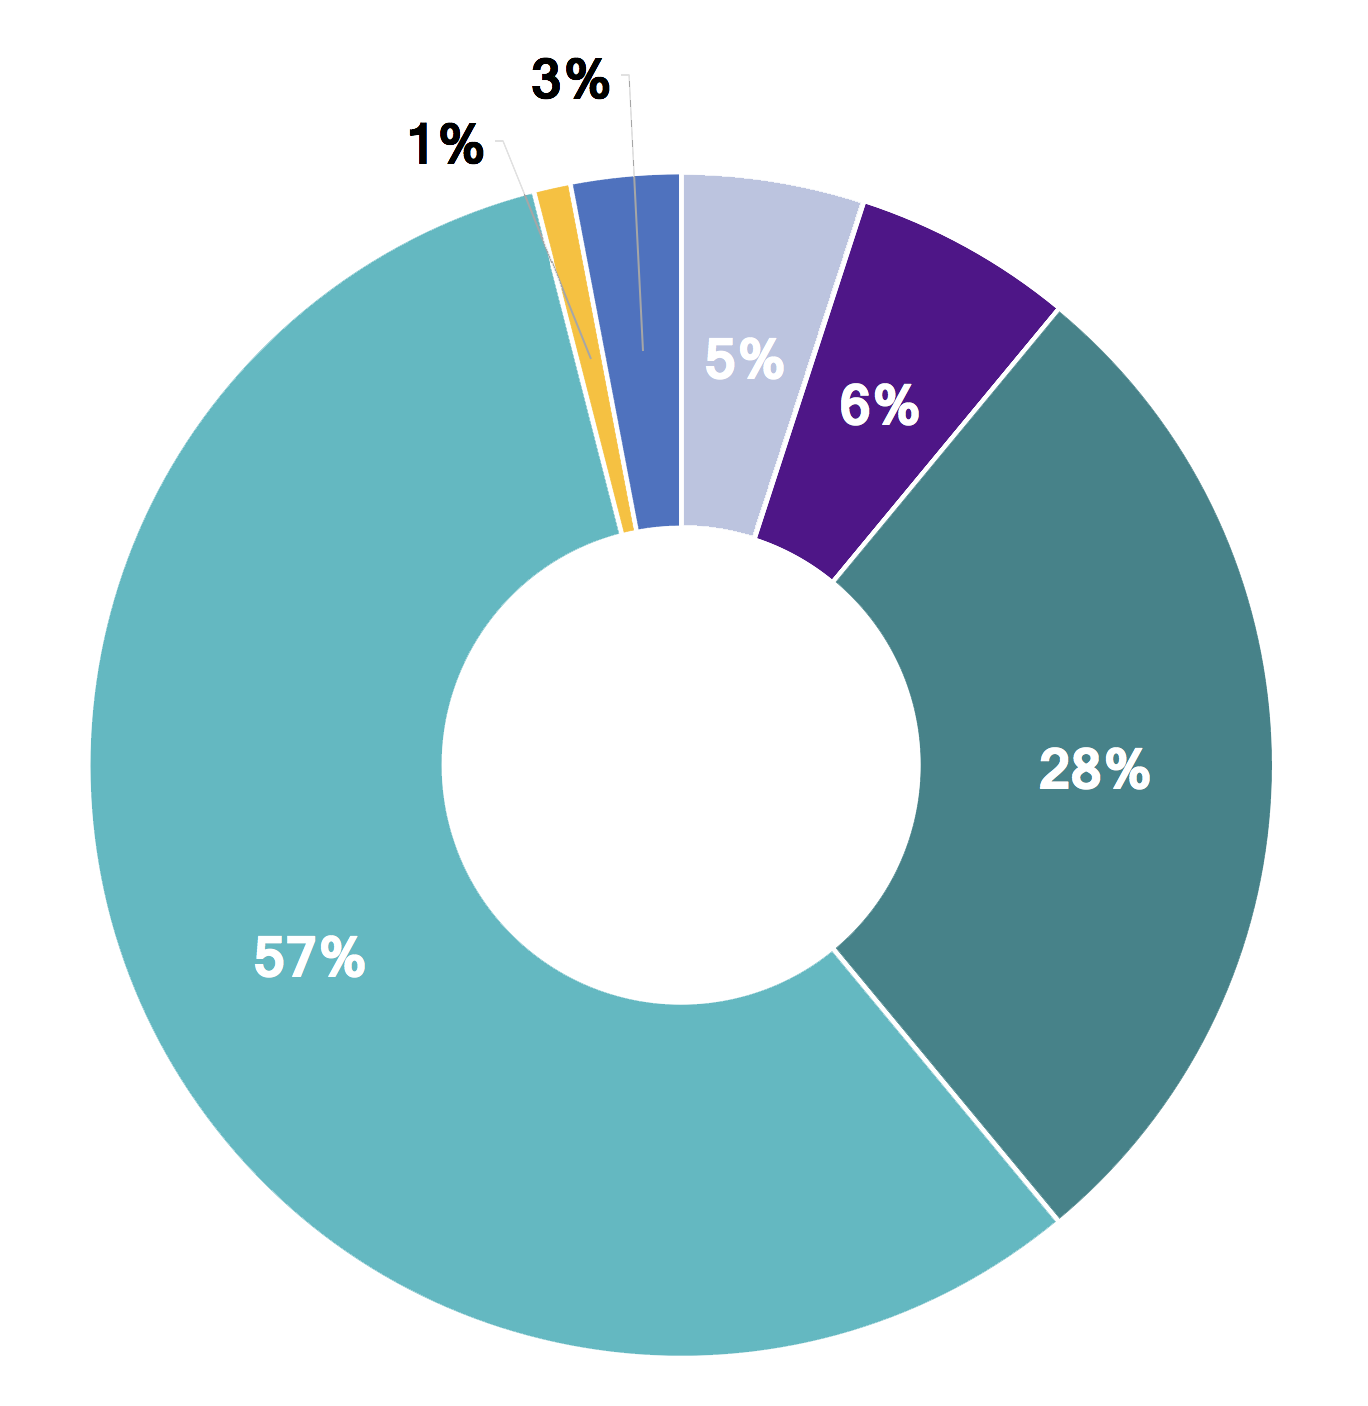 FY18 Giving by Donor Type pie chart